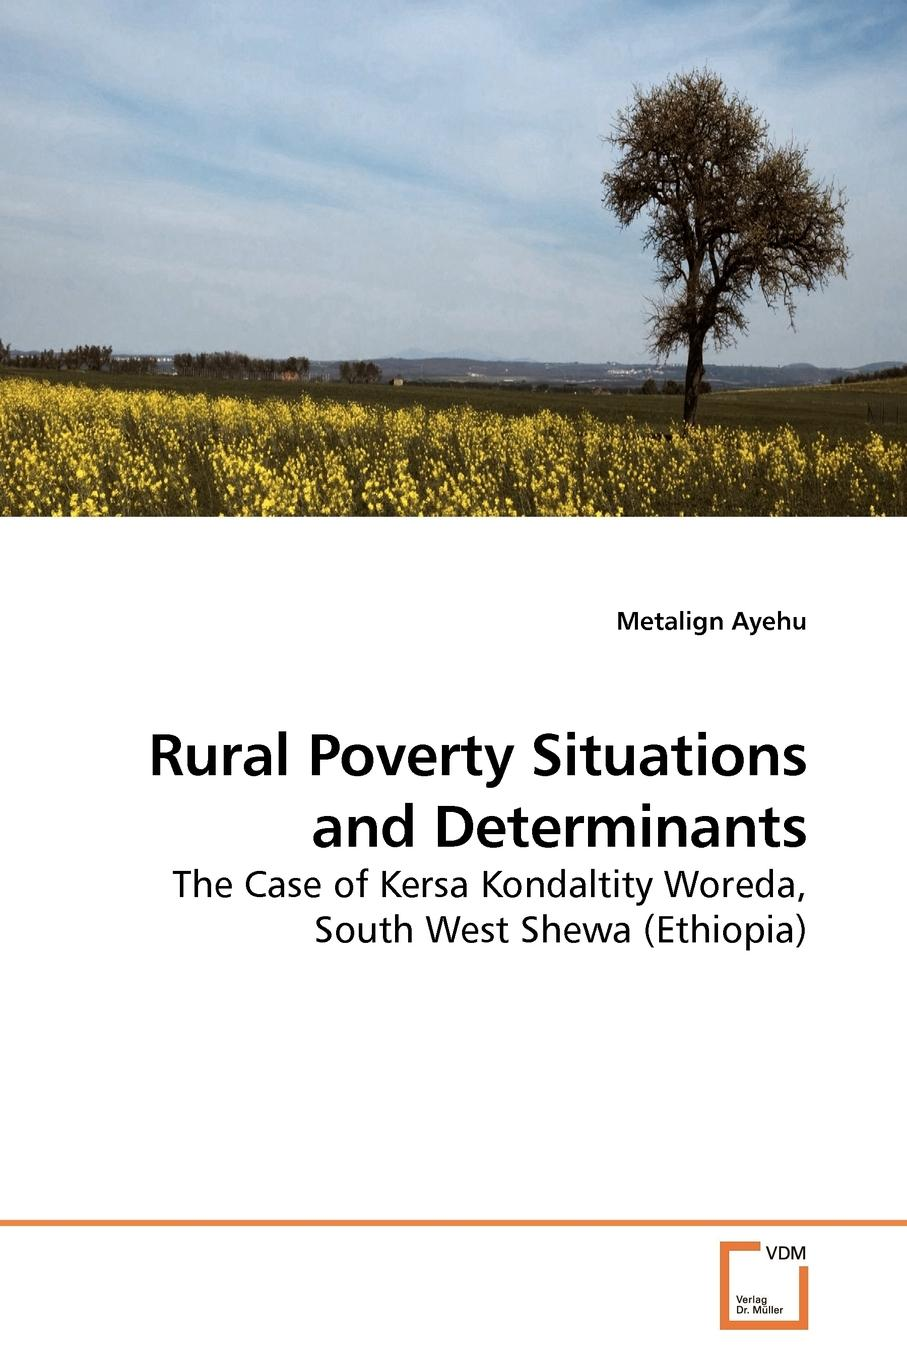 Metalign Ayehu Rural Poverty Situations and Determinants portraits of poverty